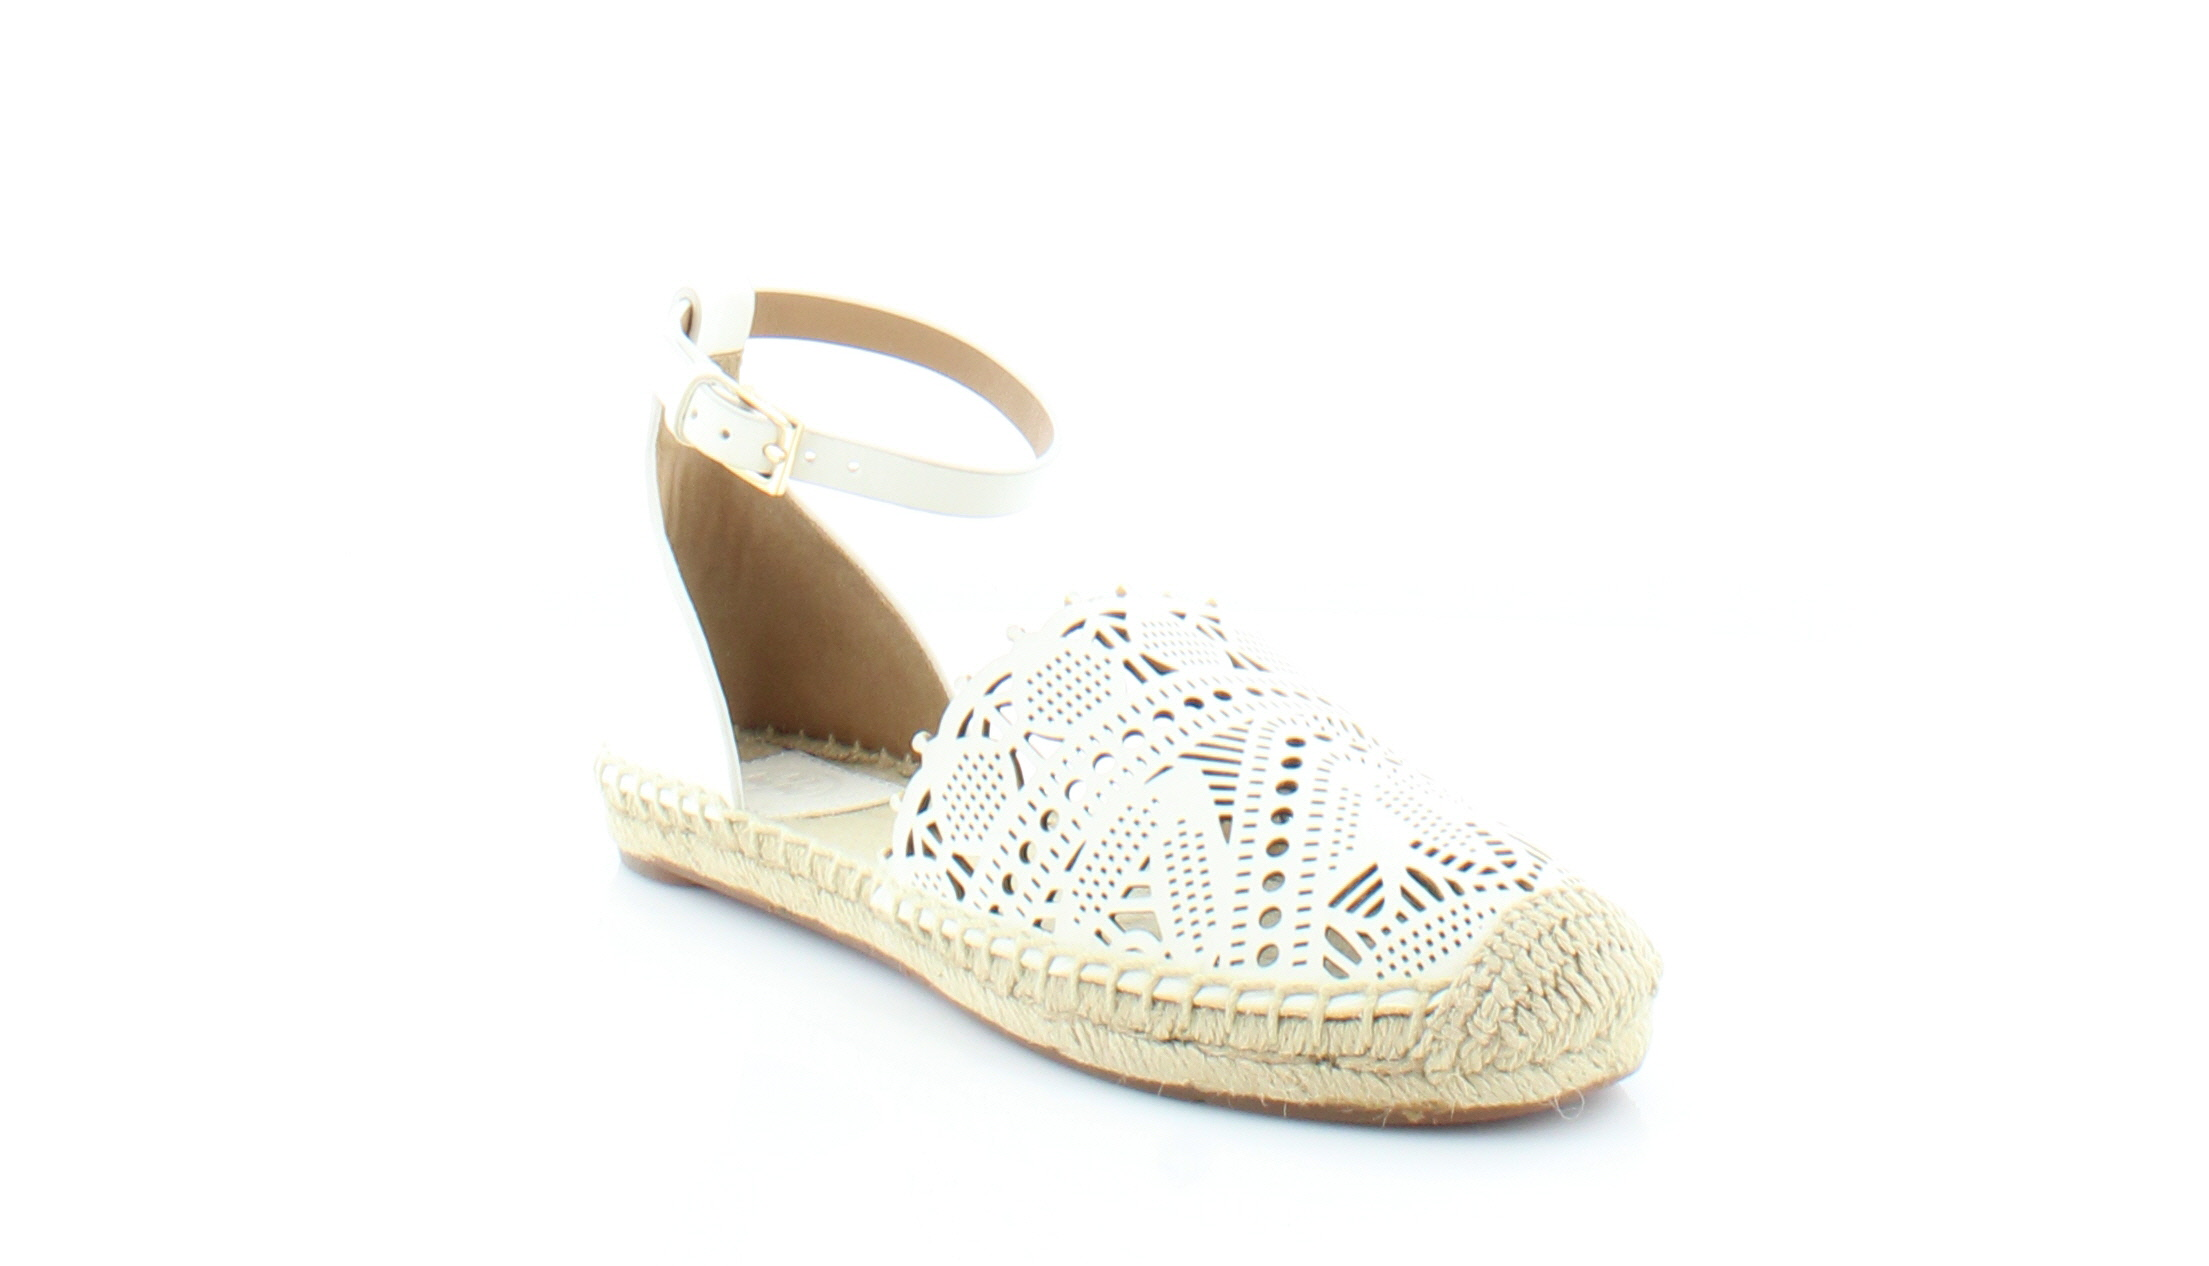 Tory Burch Roselle Espadrille Flats w/ Tags sale choice cheap discount for sale for sale sale 100% guaranteed clearance pre order bVbd2I